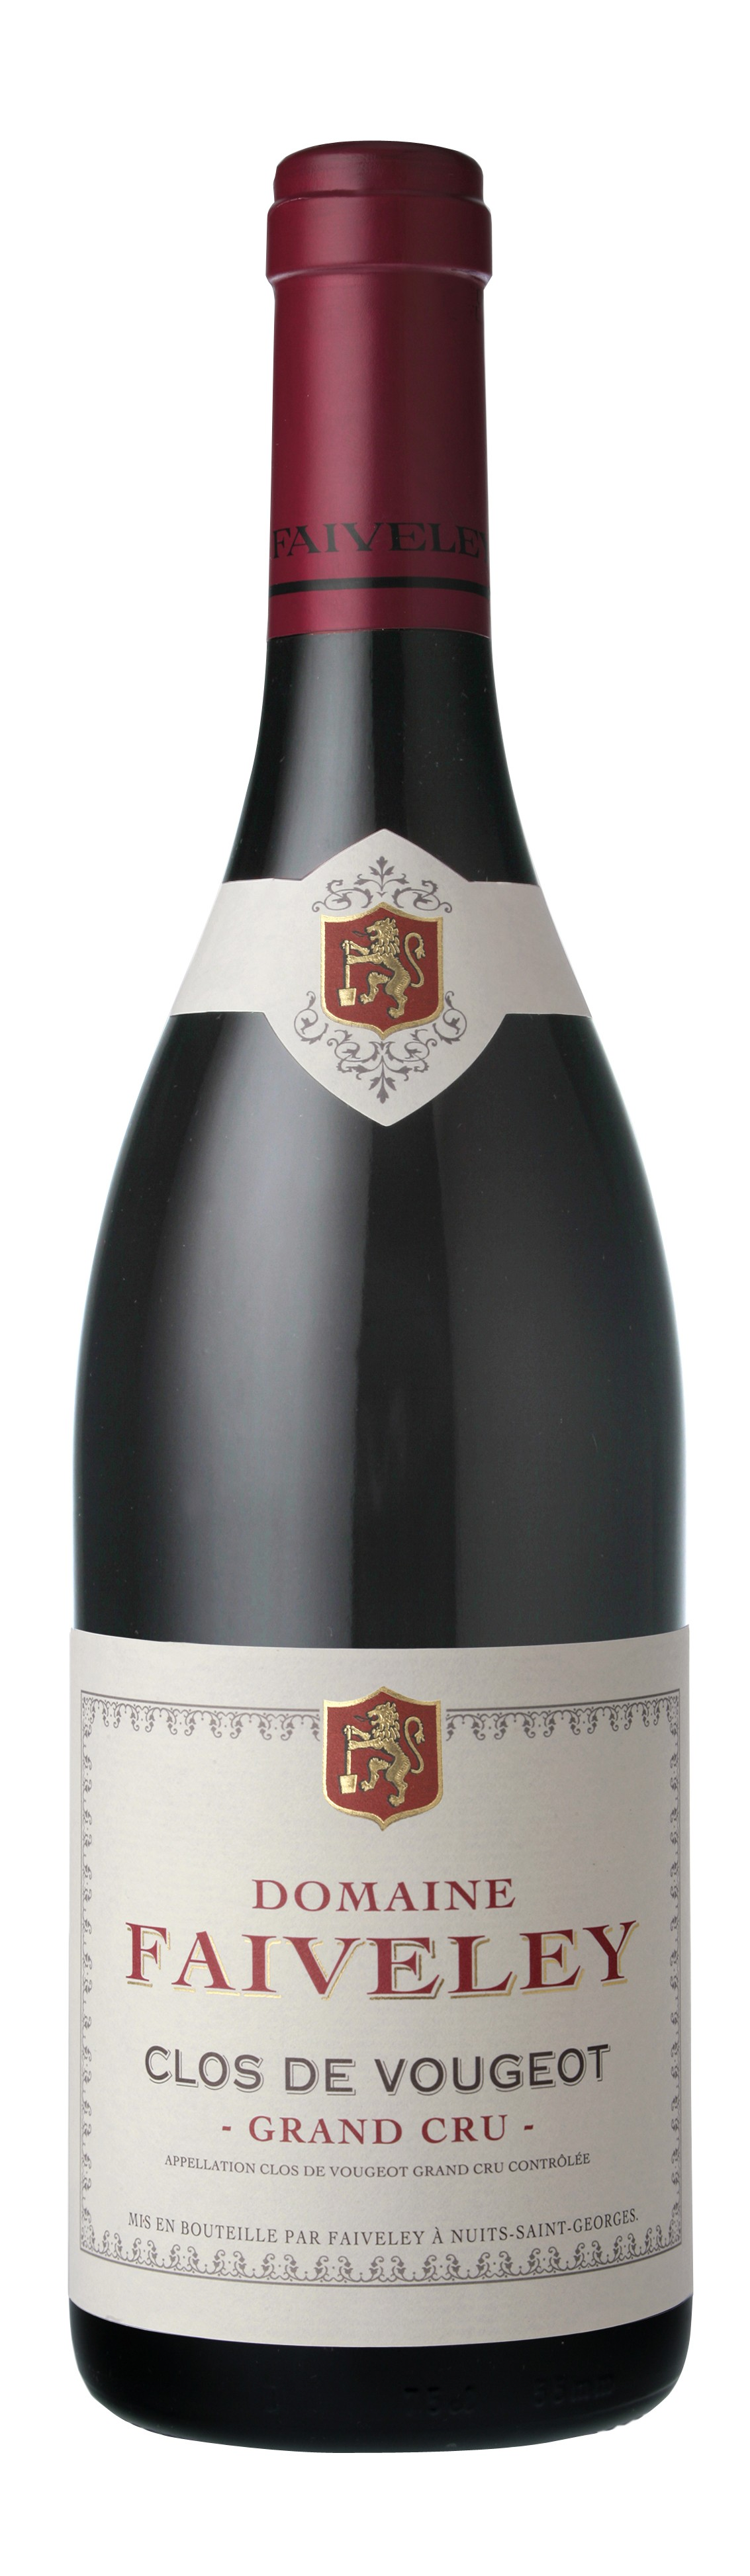 Faiveley - Clos de Vougeot Grand Cru, 2007